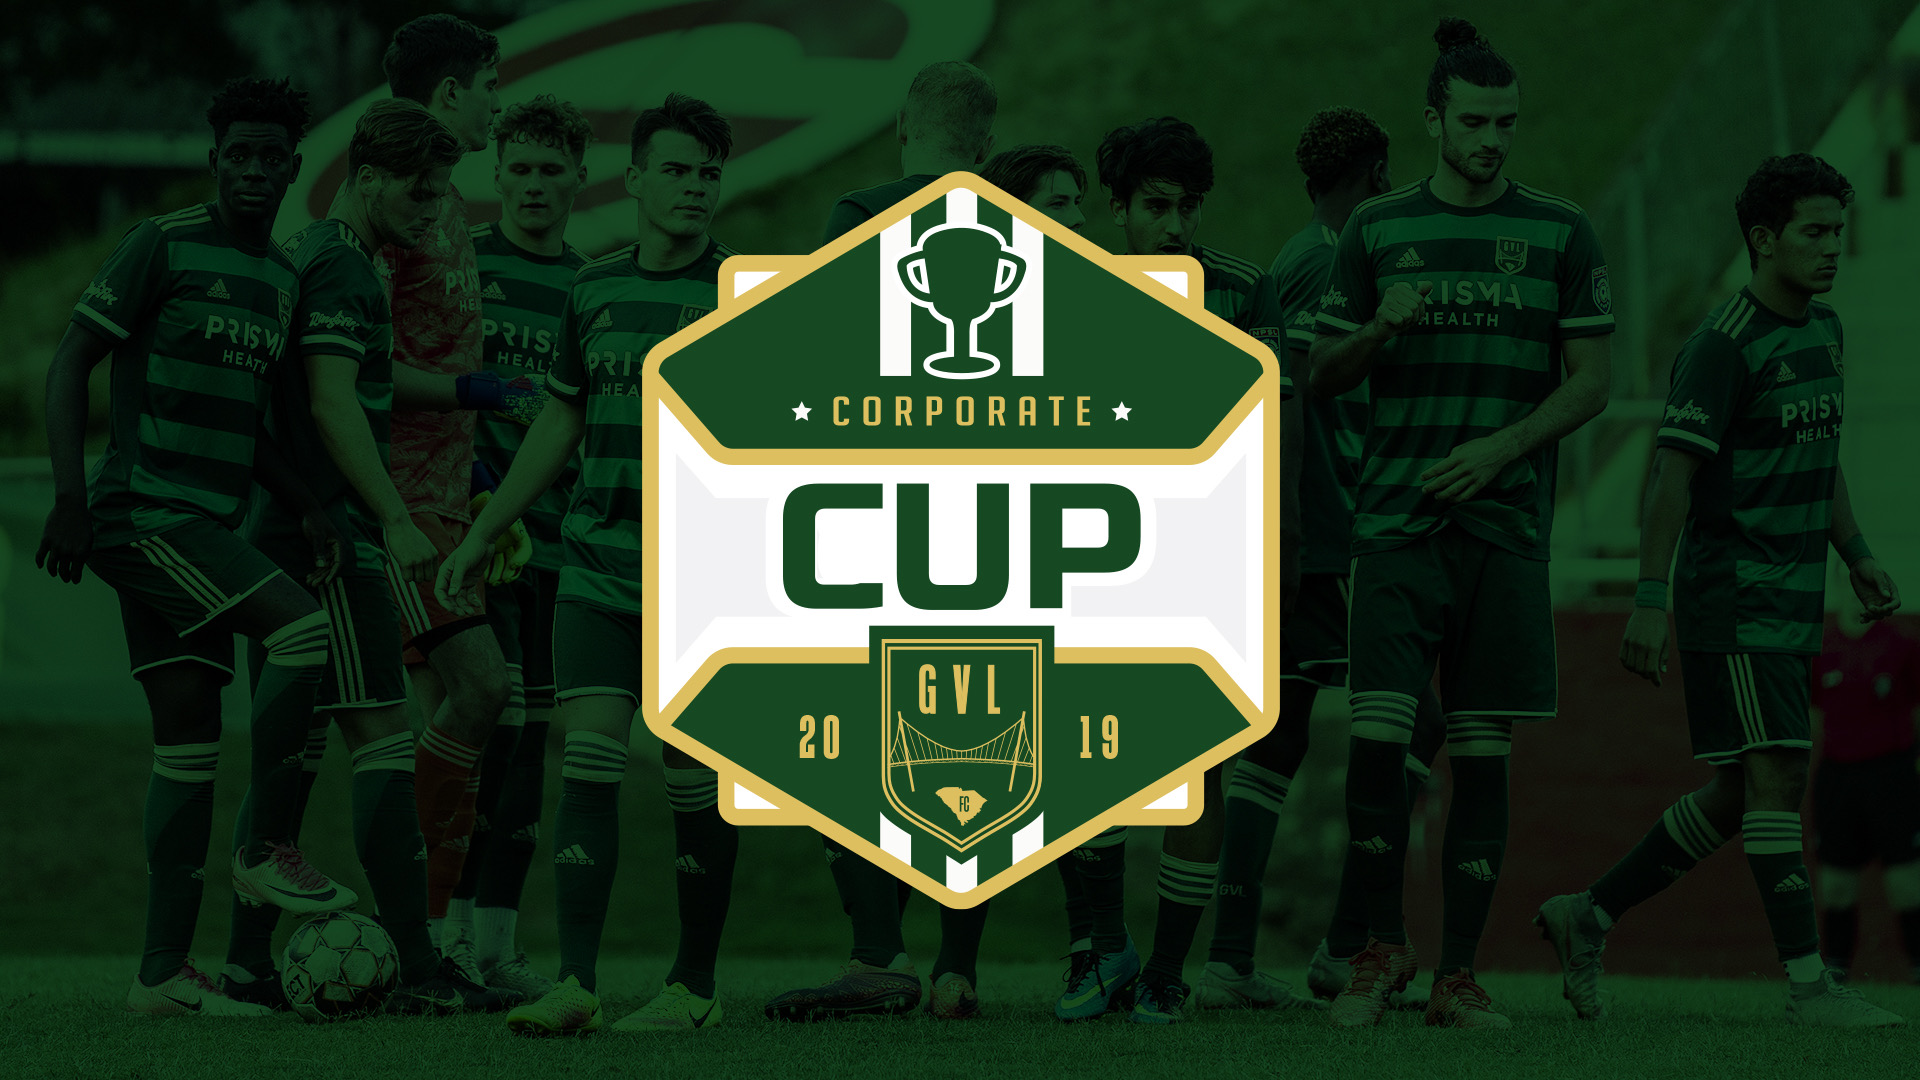 Introducing The 2019 GVLFC Corporate Cup